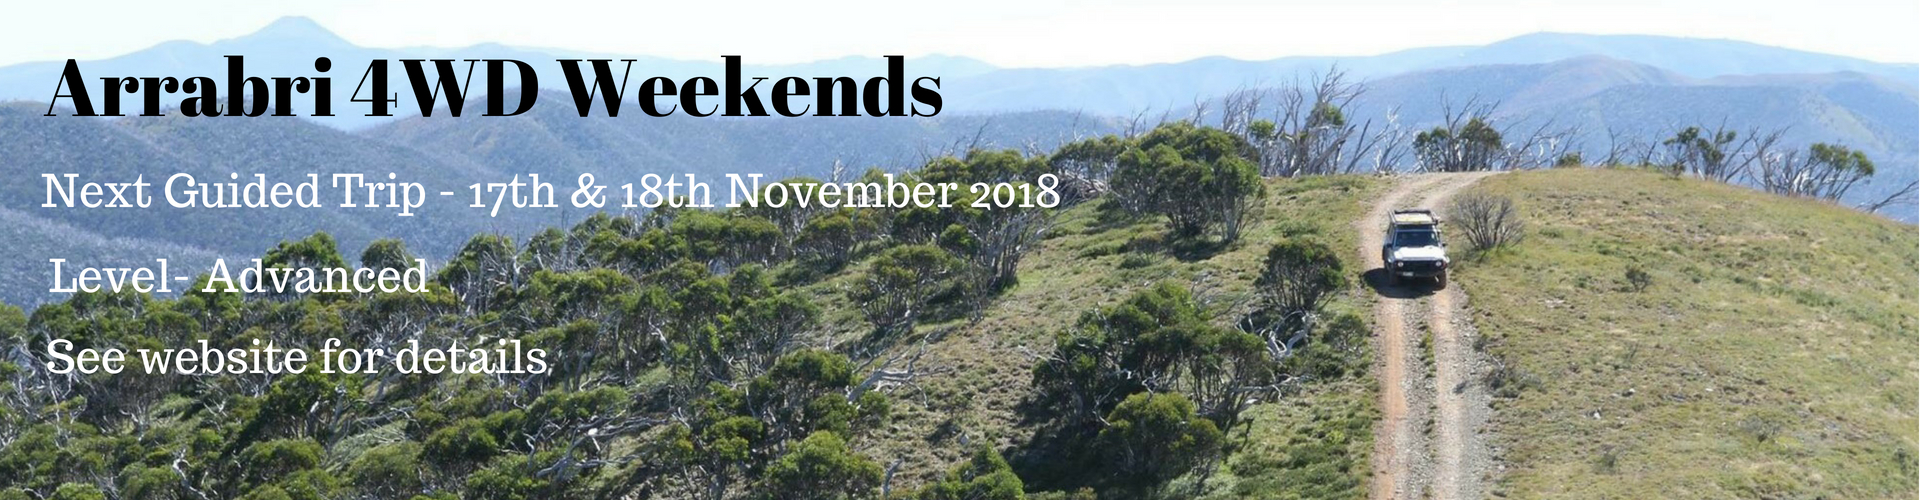 arrabri ski club hotham 4wd weekends